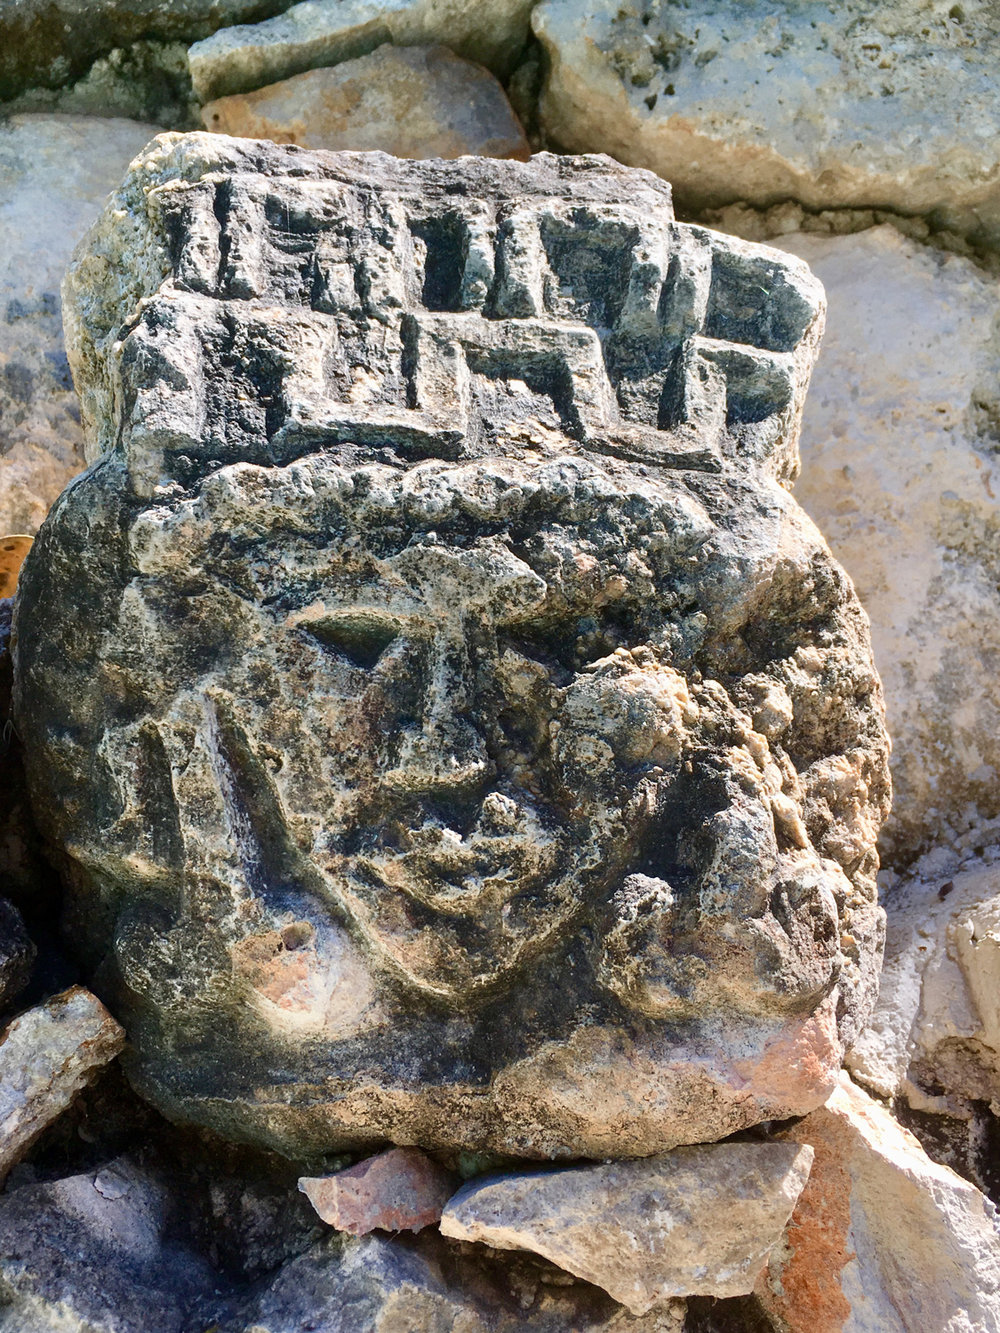 The ancient head sculpture by the pool, from Izamal ruins.